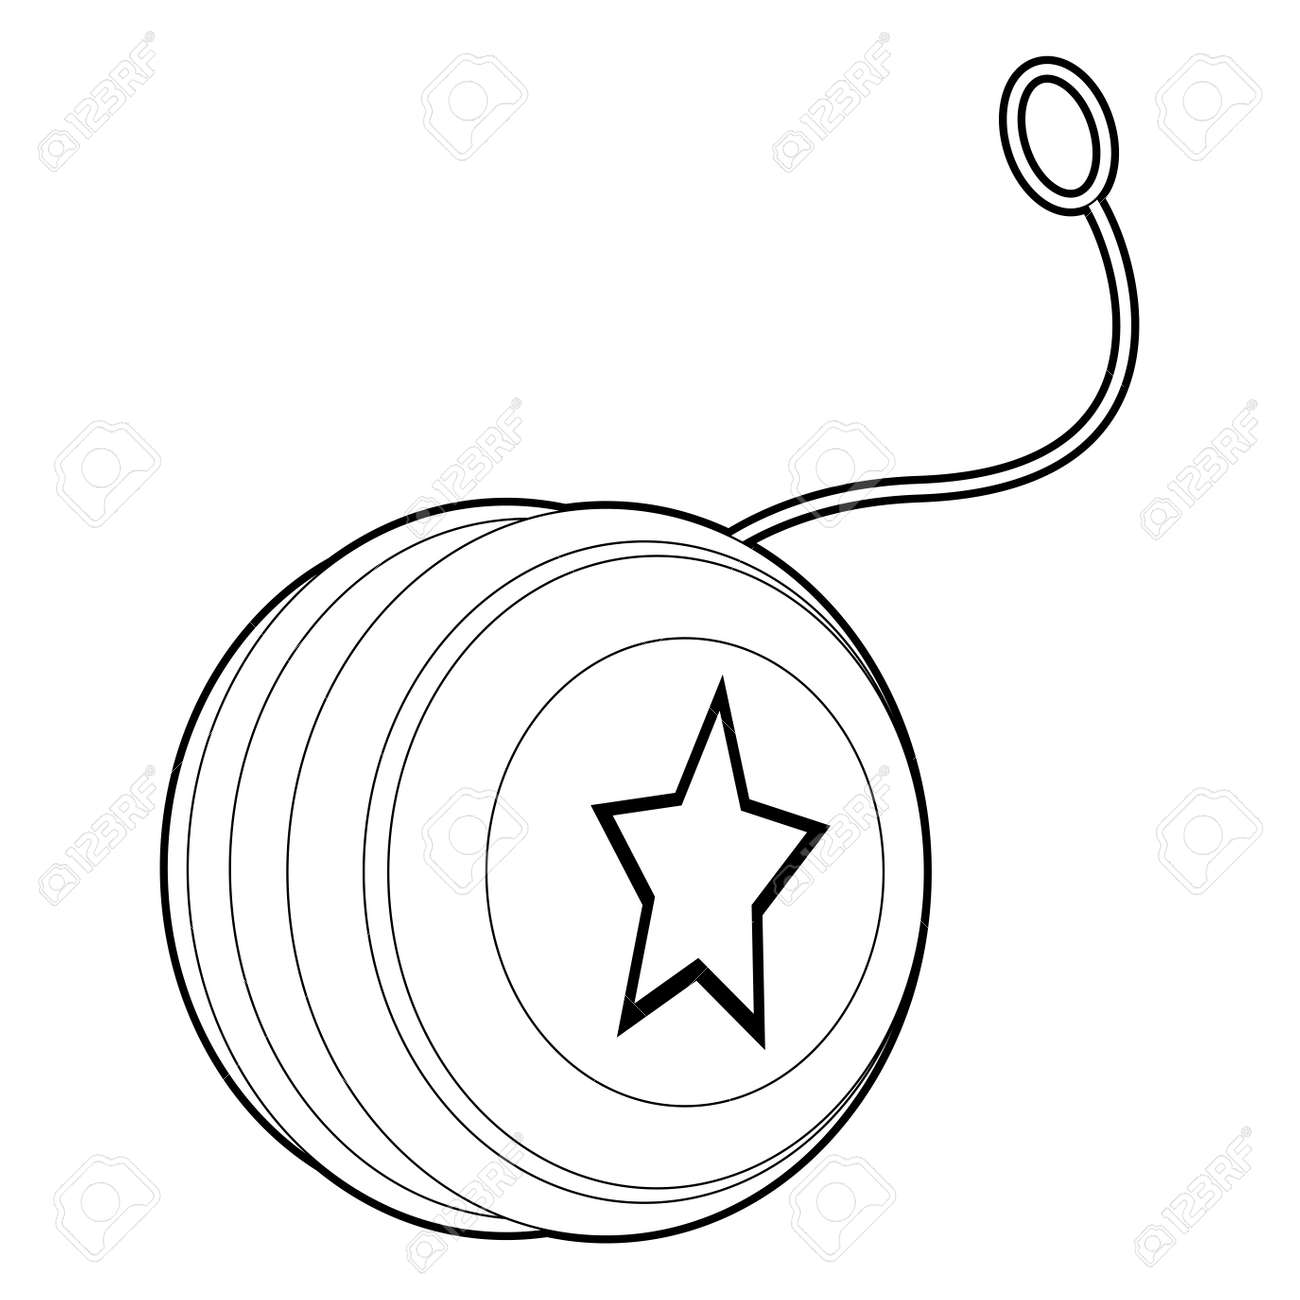 Coloring Book Outlined Yo Yo Royalty Free Cliparts, Vectors, And ... for Clipart Yoyo  156eri